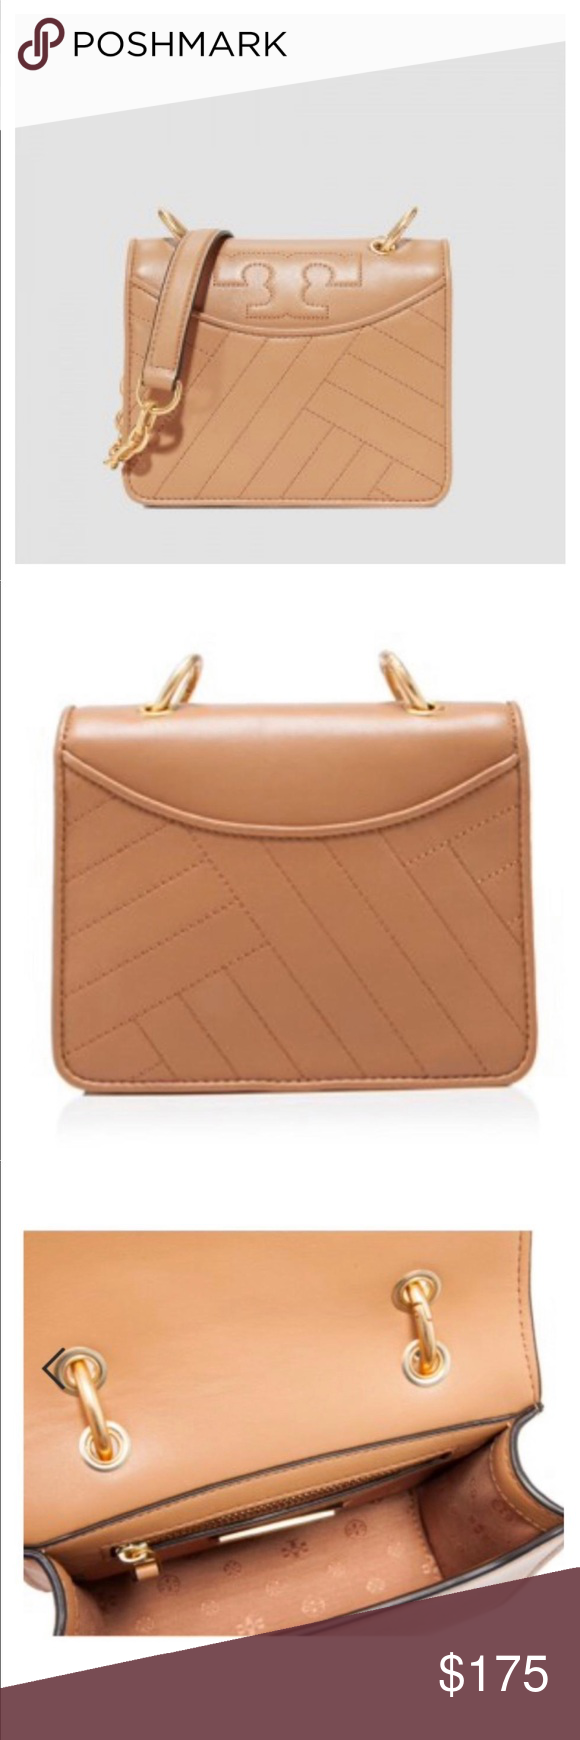 2def2e9f2a5b Tory Burch Aged Vachetta Alexa Mini Shoulder Bag PRODUCT DESCRIPTION  Arm  yourself to take on